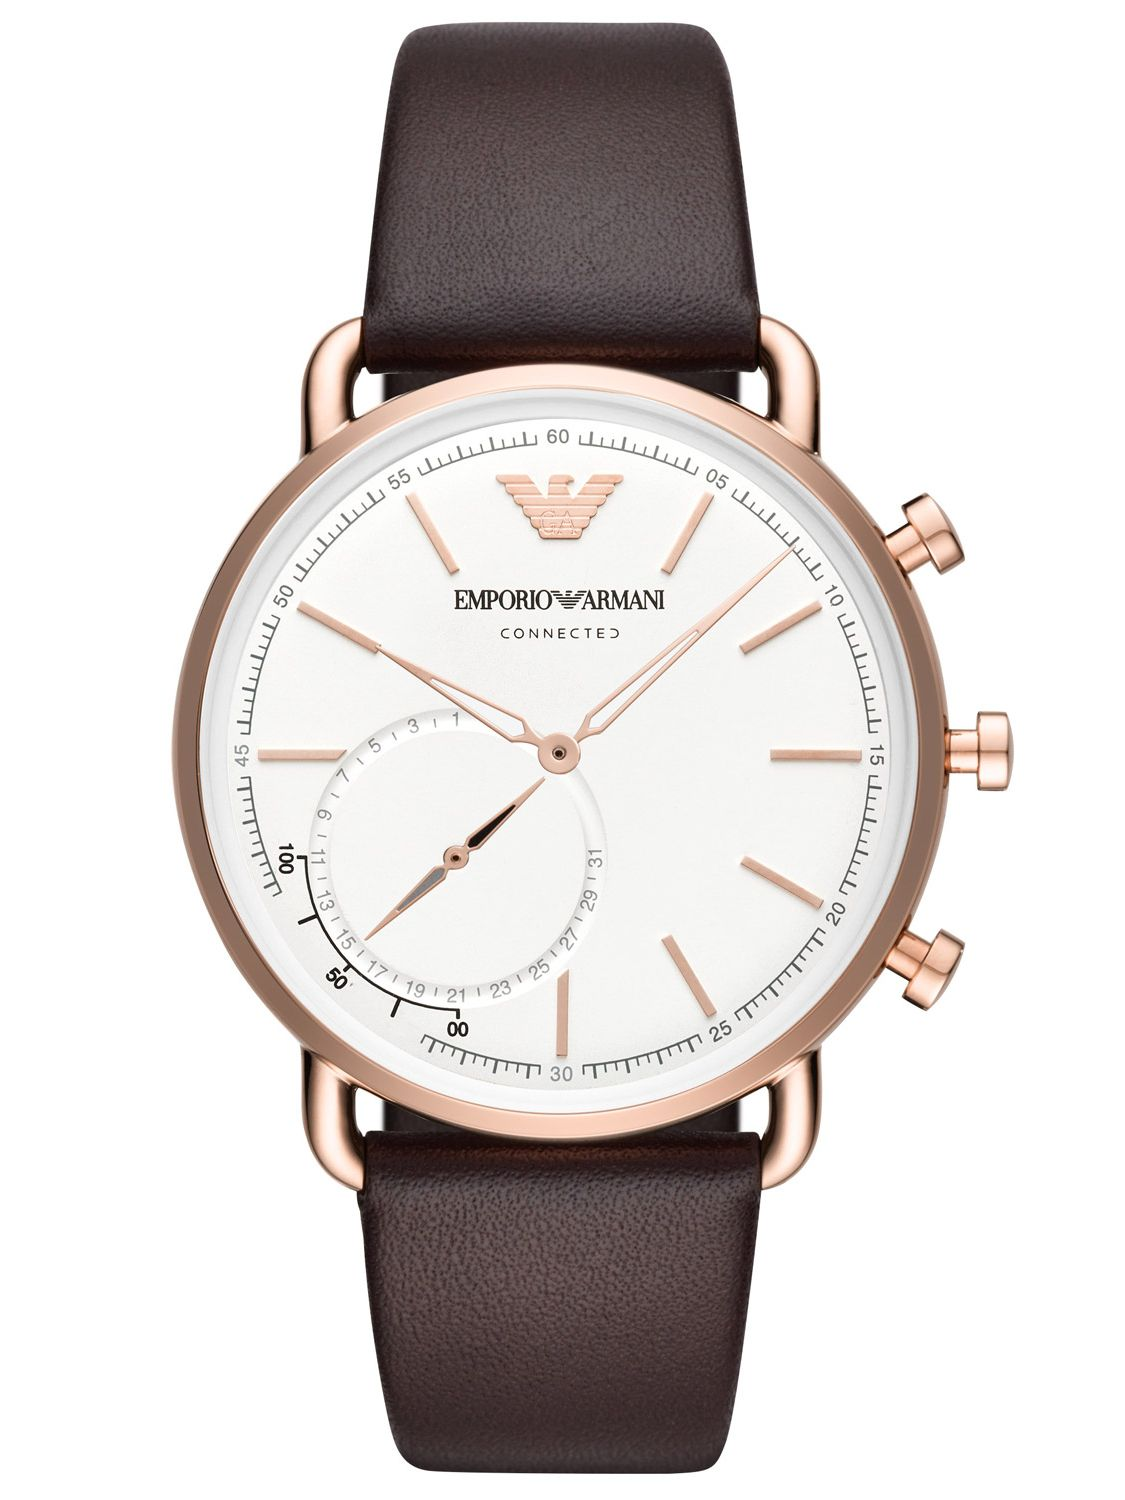 Emporio Armani Connected ART3029 Men s Watch Hybrid Smartwatch Image ... 094e195877